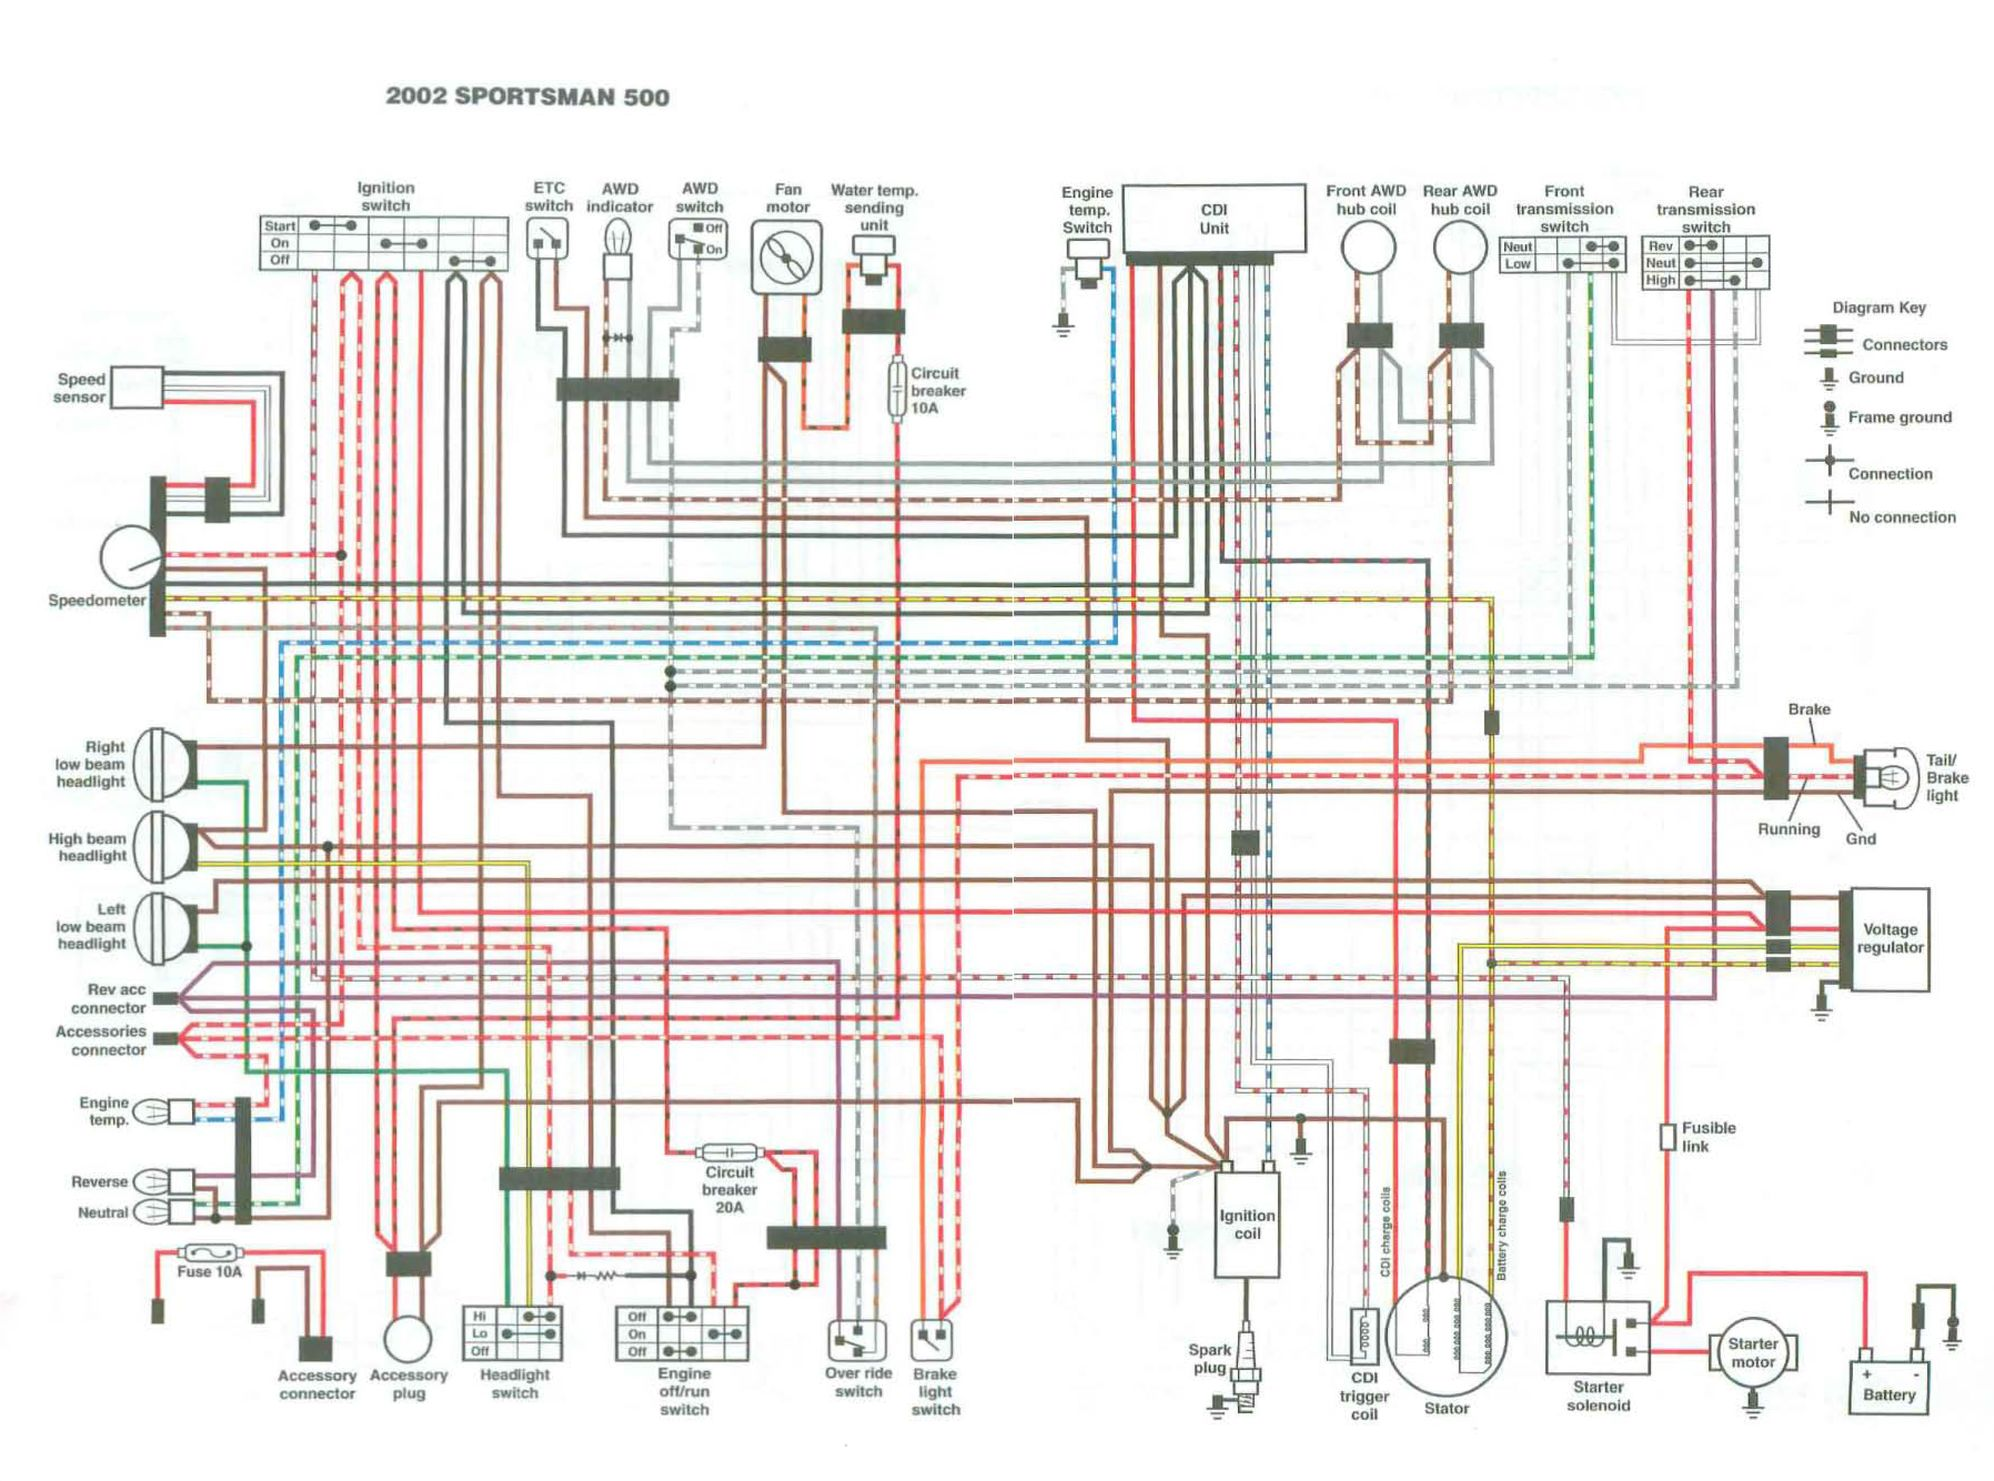 🏆 [DIAGRAM in Pictures Database] Ace Wiring Diagram Polaris Sportsman Just  Download or Read Polaris Sportsman - CINDY.ROLAND.ANDERSON.A-TAPE-DIAGRAM .ONYXUM.COMComplete Diagram Picture Database - Onyxum.com